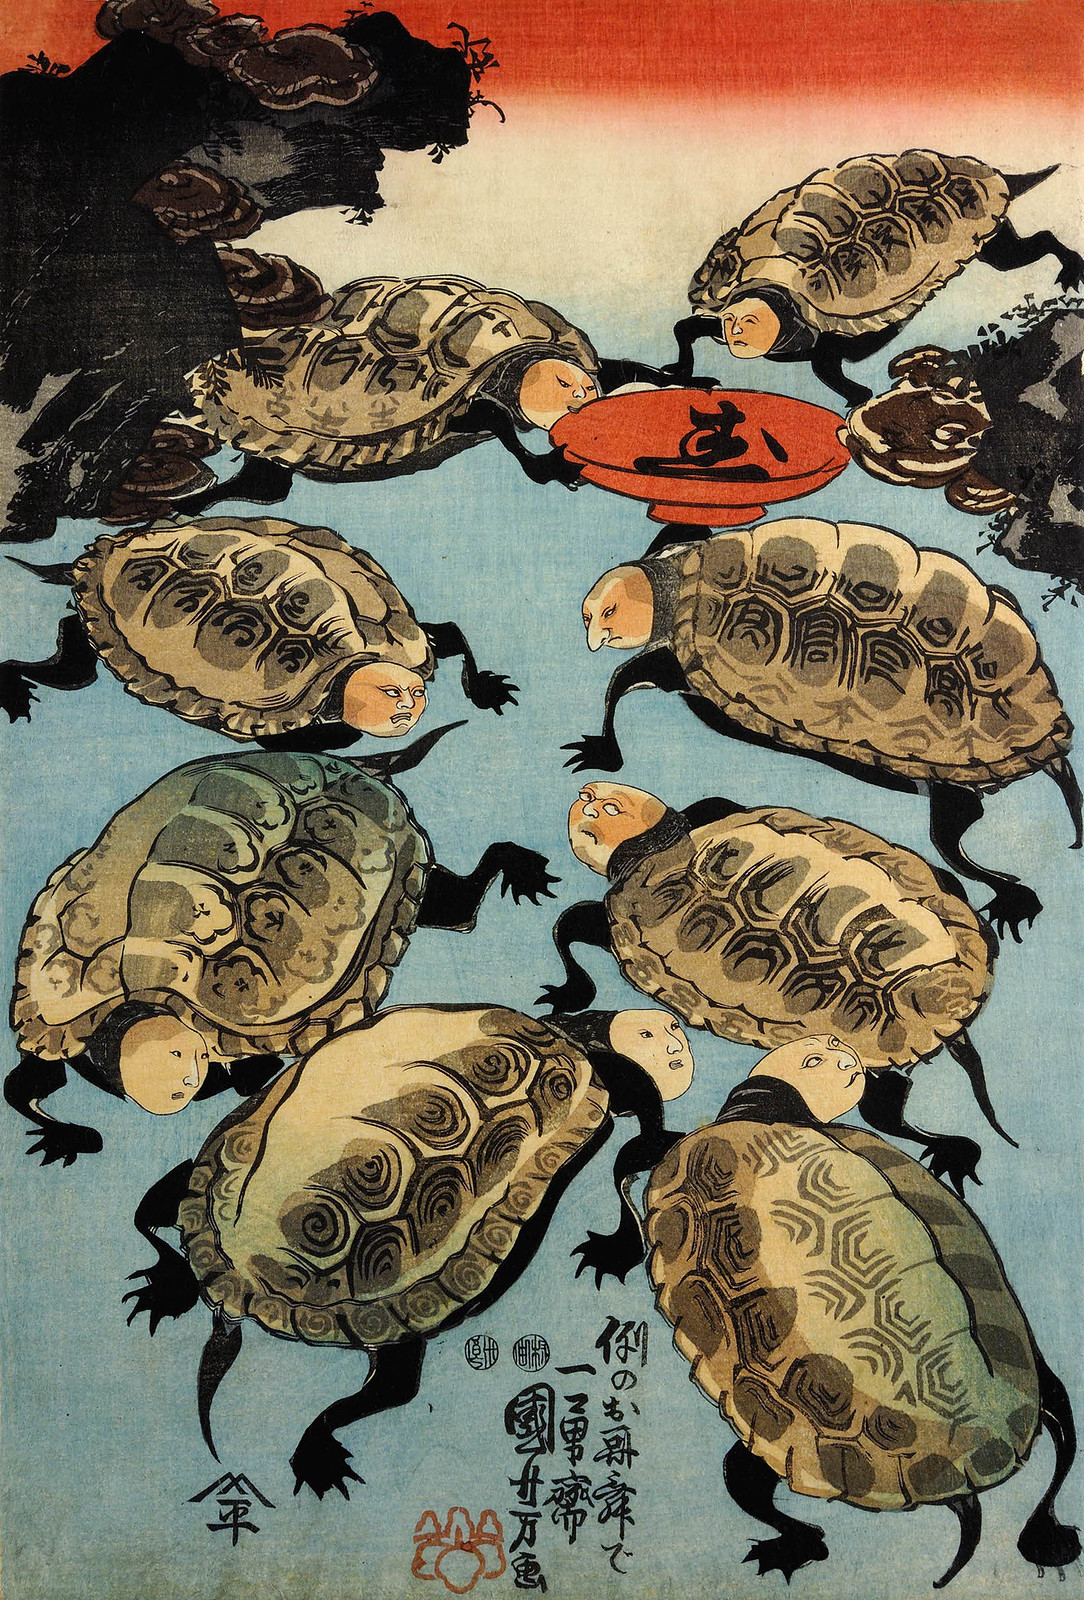 Utagawa Kuniyoshi - Ki-ki myo-myo (Strange and Marvelous Turtles of Happiness) 1847-52 (middle panel)